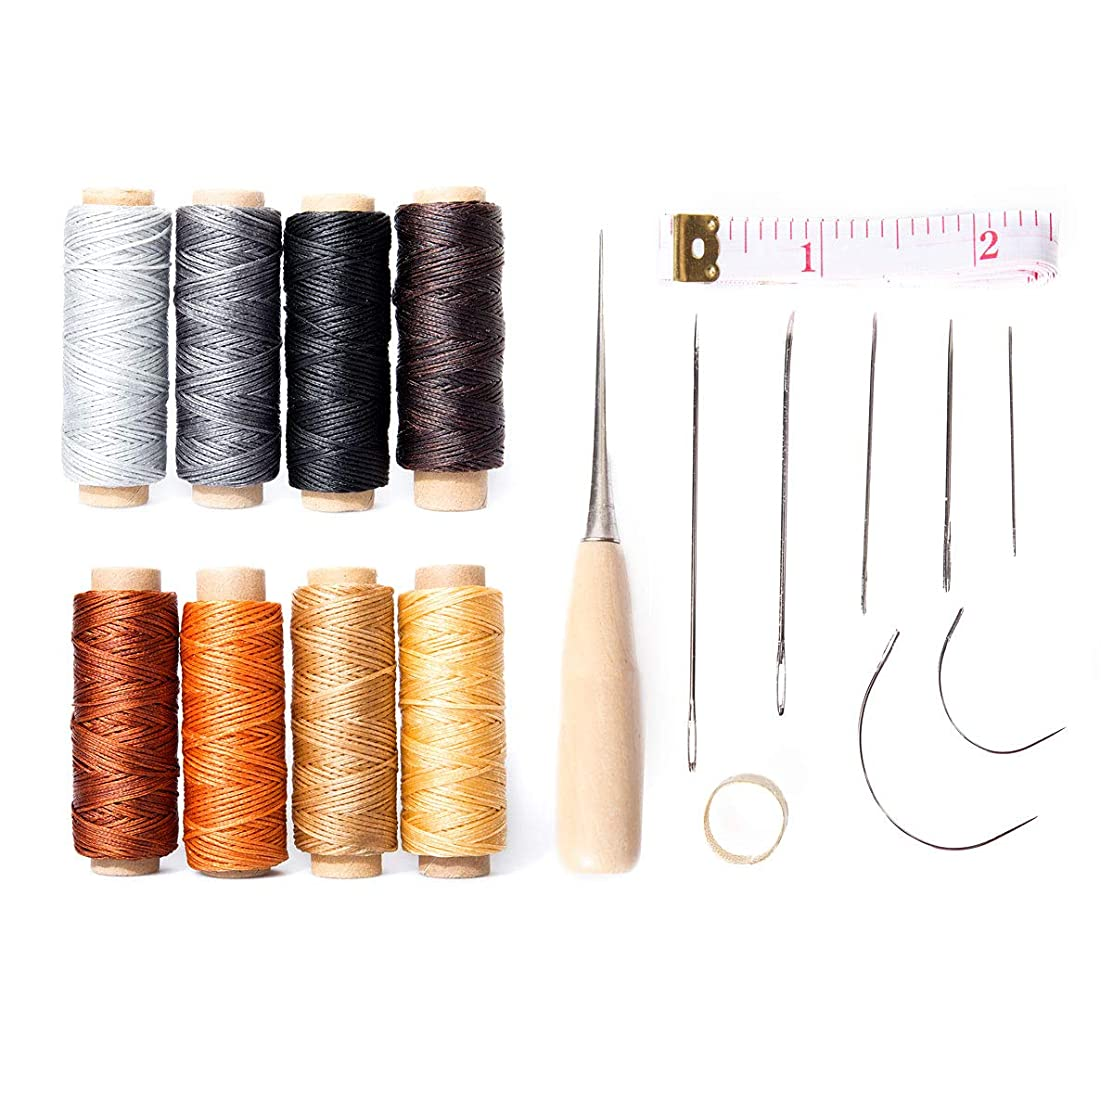 18pcs Waxed Thread with Hand Sewing Needles Kit and Drilling Awl Thimble 150D 1mm Hand Stitching Cord for Leather Craft DIY (18 pcs Sewing Needles Kit)